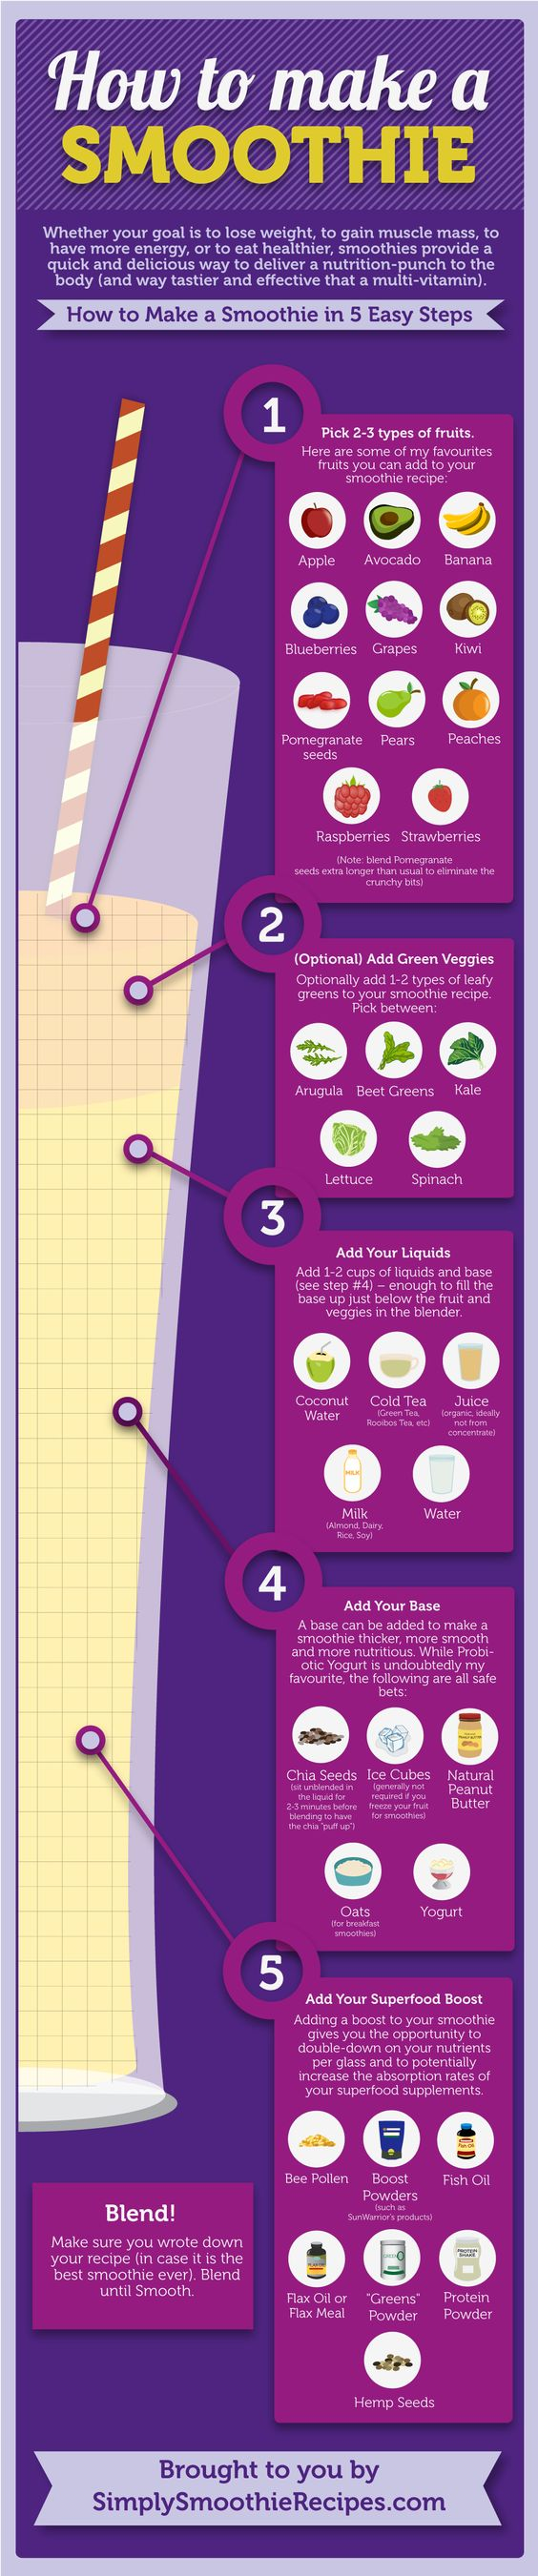 smoothie-guide